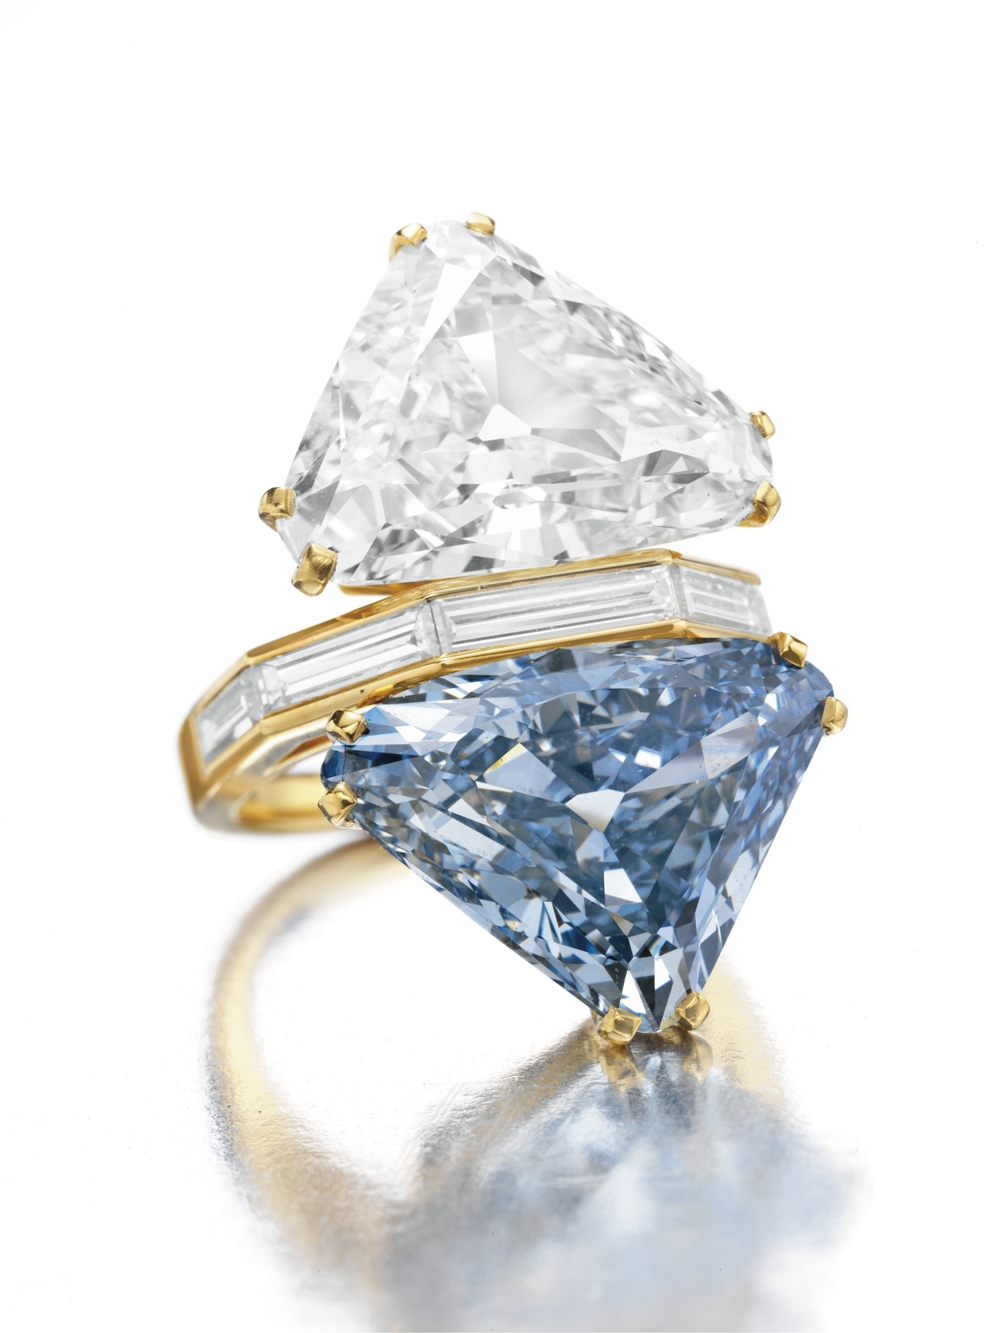 The Bulgari Blue Diamond Sold for Almost $15.8 Million